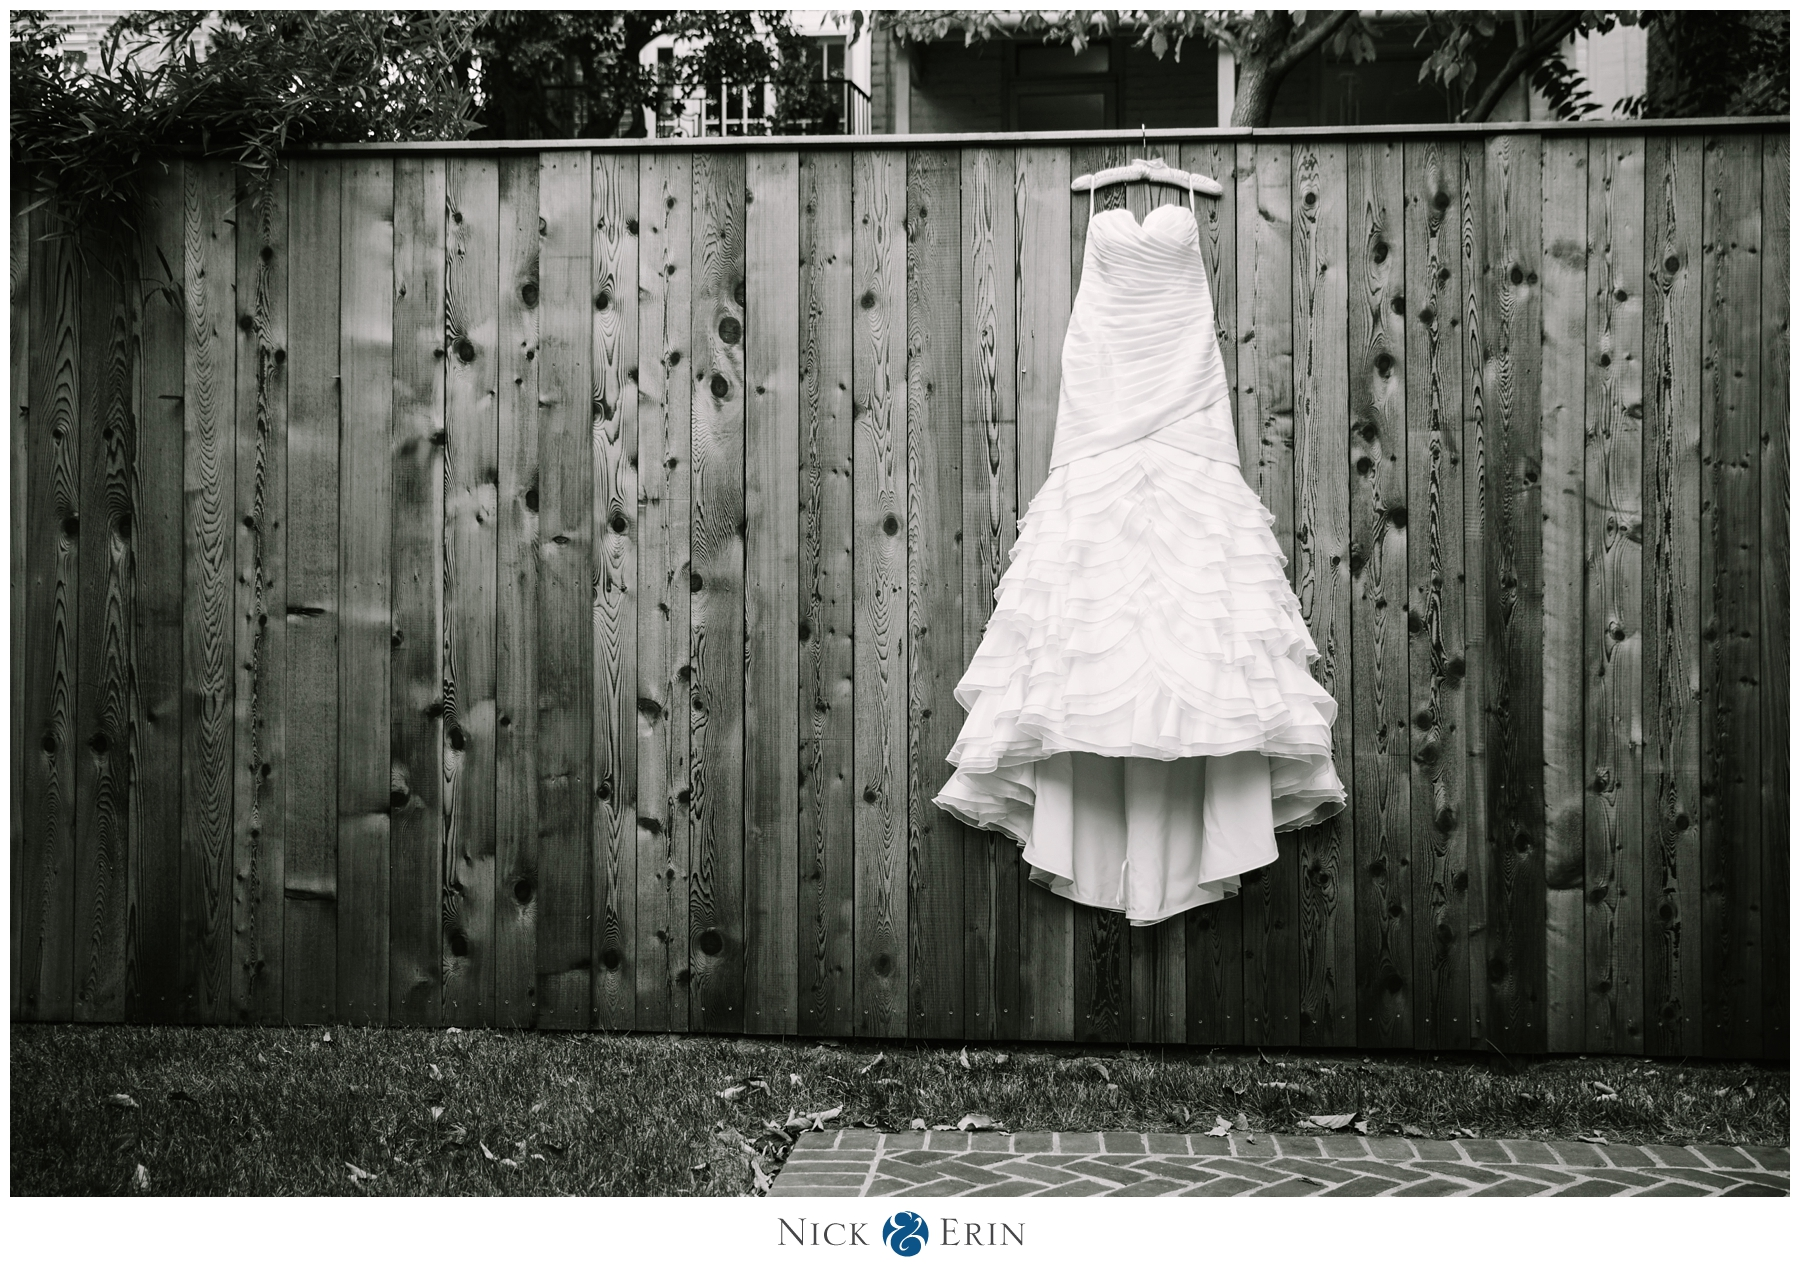 donner_photography_washington-dc-wedding_alanna-josh_0011